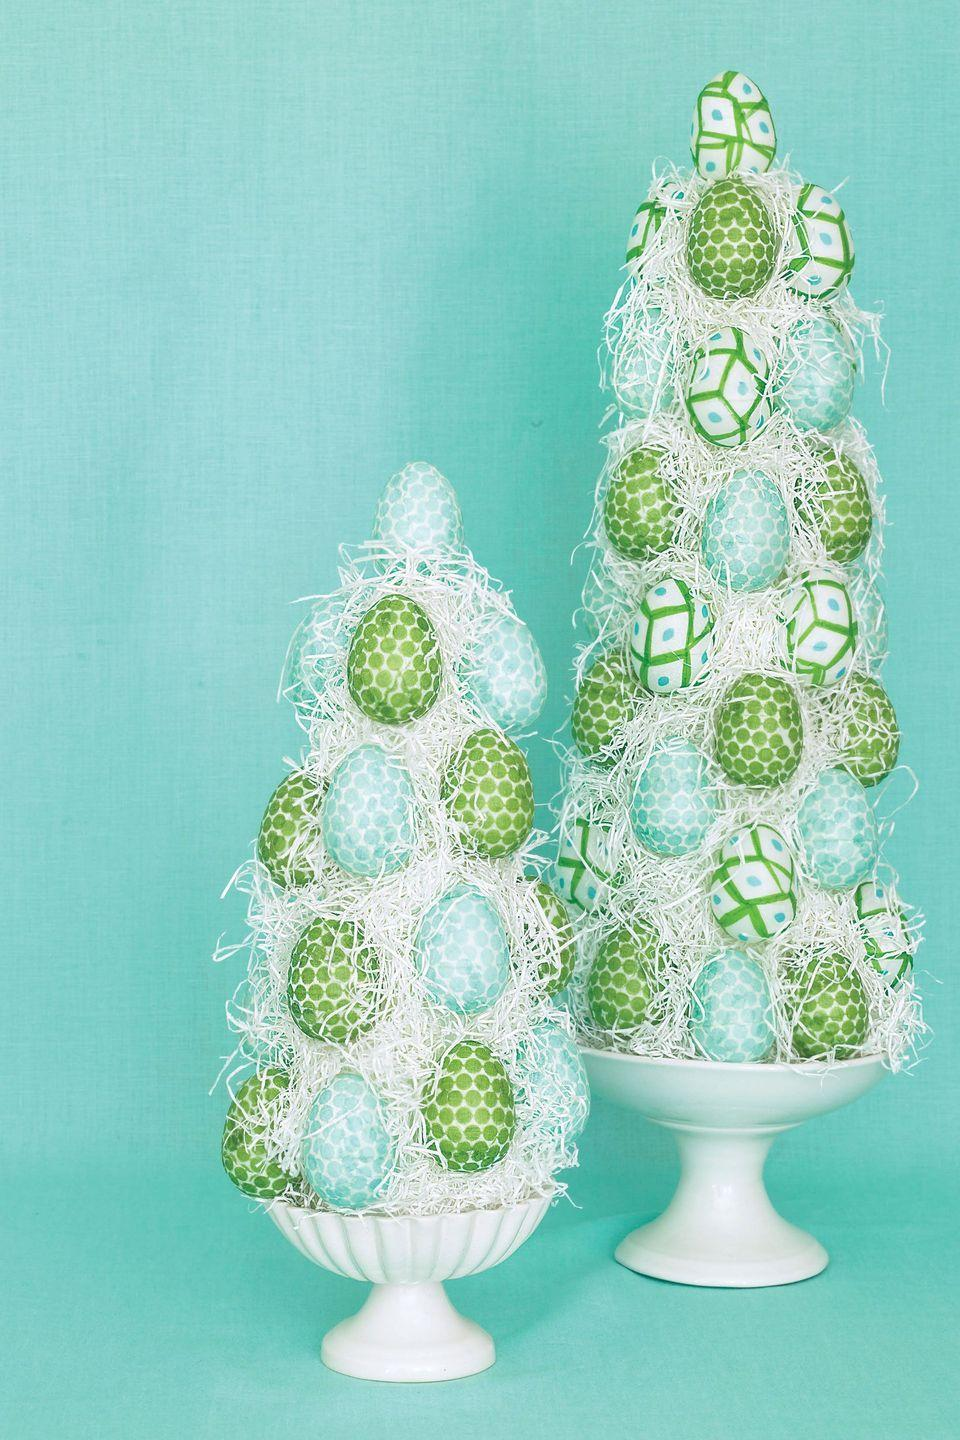 """<p>Feather your nest with topiaries made from paper napkin-covered plastic eggs glued onto Easter grass-covered Styrofoam cones.</p><p><strong><em><a href=""""https://www.womansday.com/home/crafts-projects/how-to/a5650/easter-craft-how-to-egg-topiary-116415/"""" rel=""""nofollow noopener"""" target=""""_blank"""" data-ylk=""""slk:Get the Easter Egg Topiaries tutorial."""" class=""""link rapid-noclick-resp"""">Get the Easter Egg Topiaries tutorial.</a></em></strong></p><p><strong><a class=""""link rapid-noclick-resp"""" href=""""https://www.amazon.com/Darice-01260P-1-Piece-Craftwork-9-85-Inch/dp/B00AF8I9E6/ref=dp_prsubs_1?pd_rd_i=B00AF8I9E6&psc=1&tag=syn-yahoo-20&ascsubtag=%5Bartid%7C10070.g.1751%5Bsrc%7Cyahoo-us"""" rel=""""nofollow noopener"""" target=""""_blank"""" data-ylk=""""slk:SHOP SYROFOAM CONES"""">SHOP SYROFOAM CONES</a></strong></p>"""